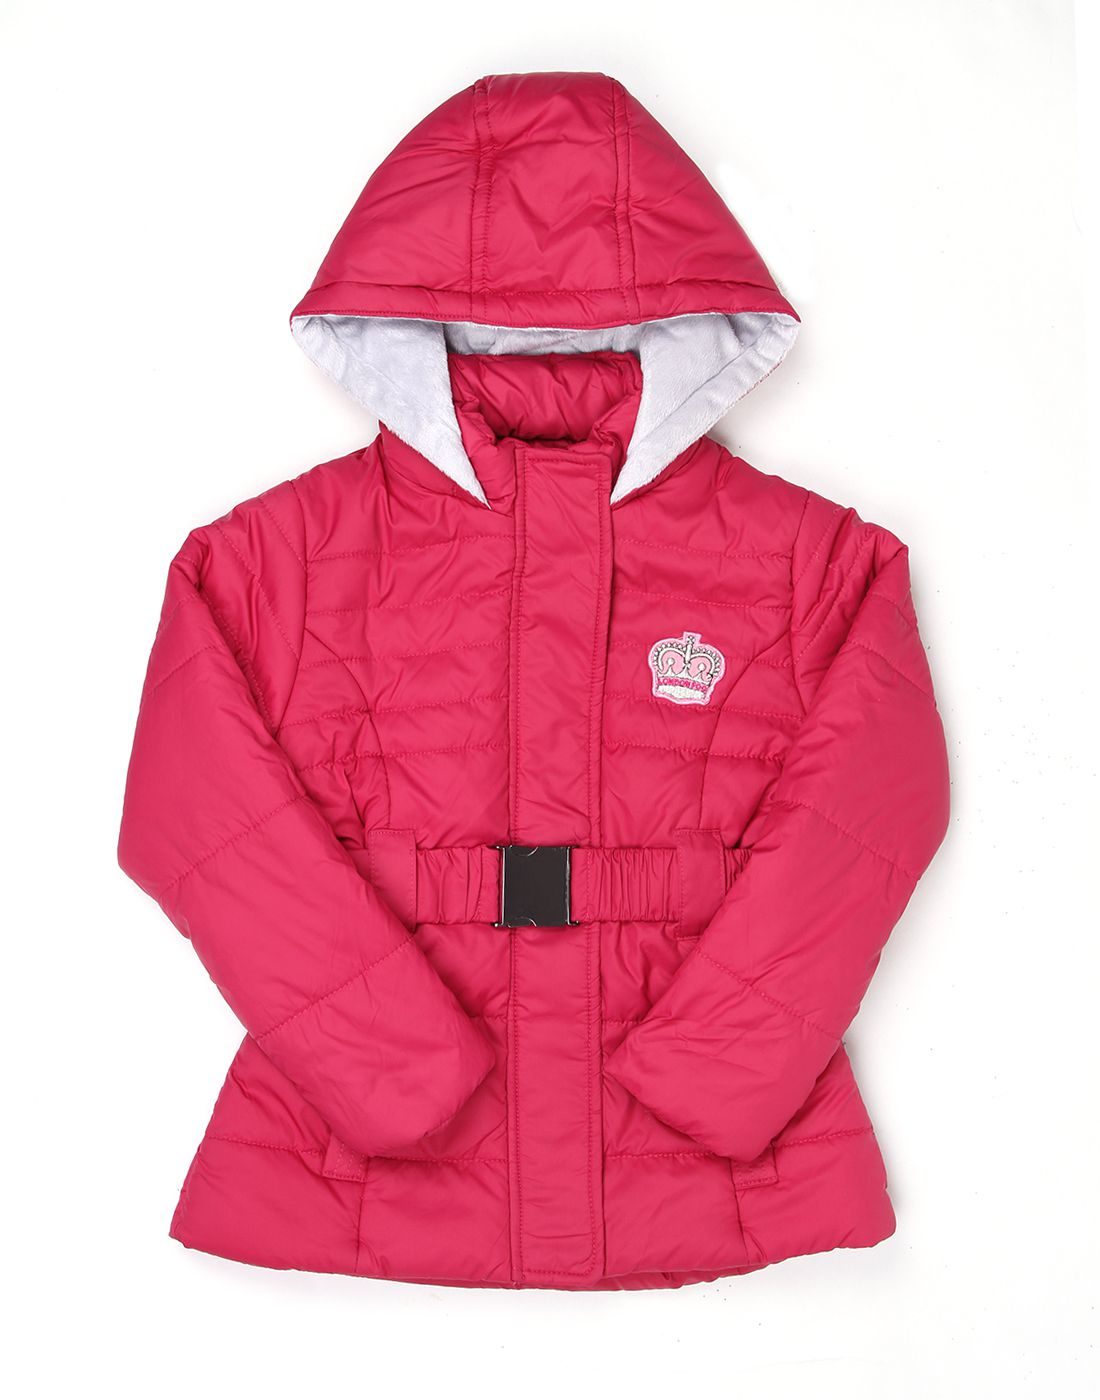 London Fog Girls Cherry Full Sleeve Jacket